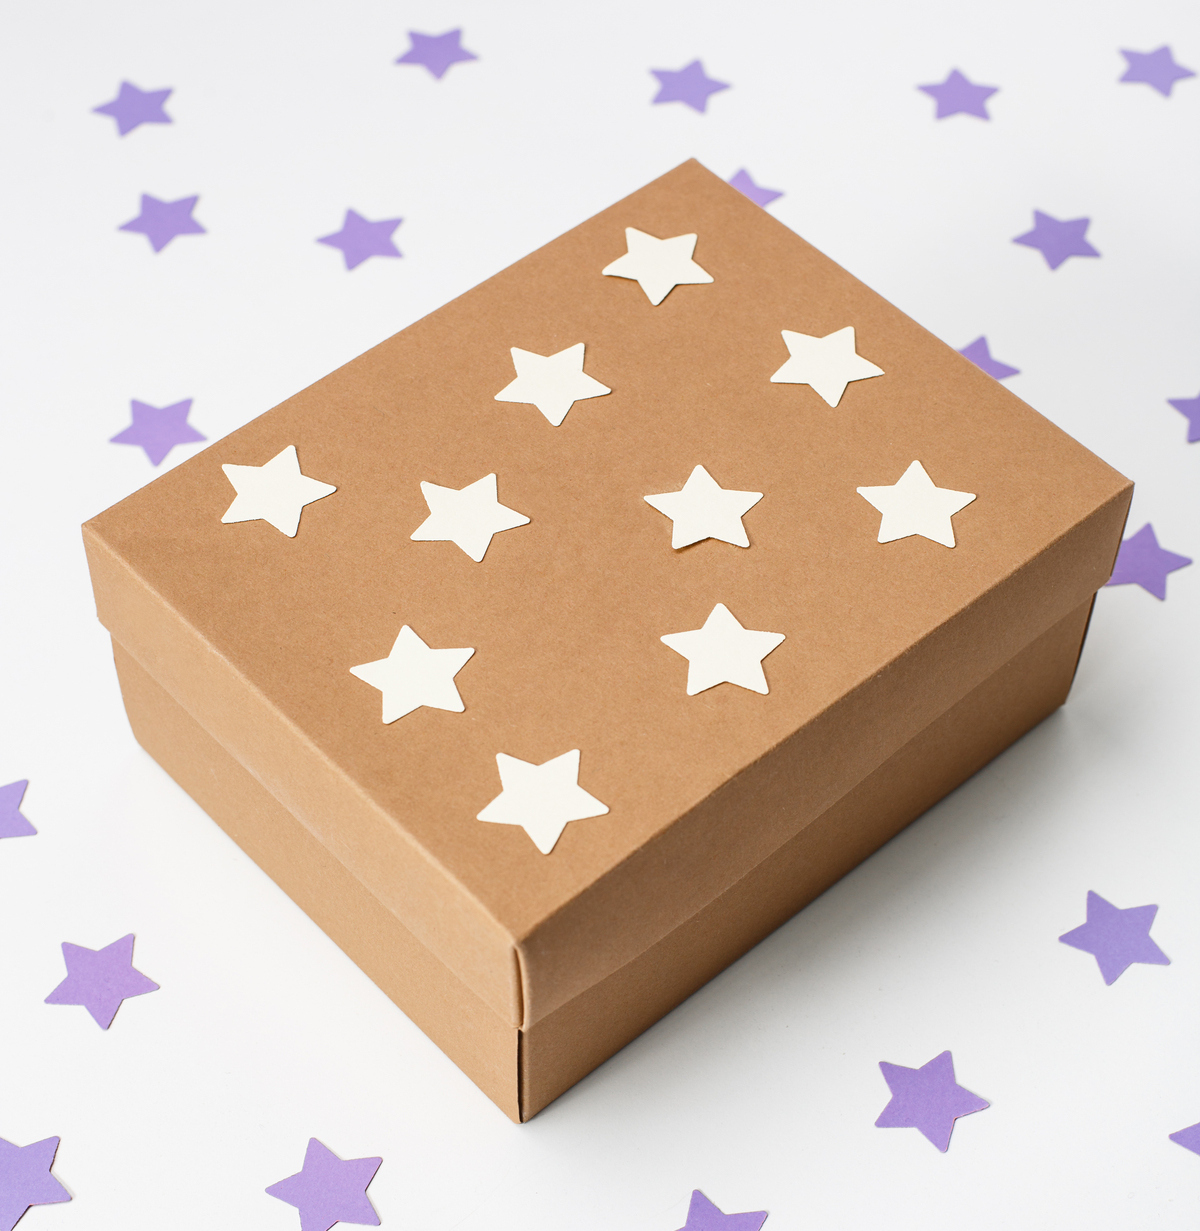 A brown box covered in white stars, sitting on a white table covered in purple stars